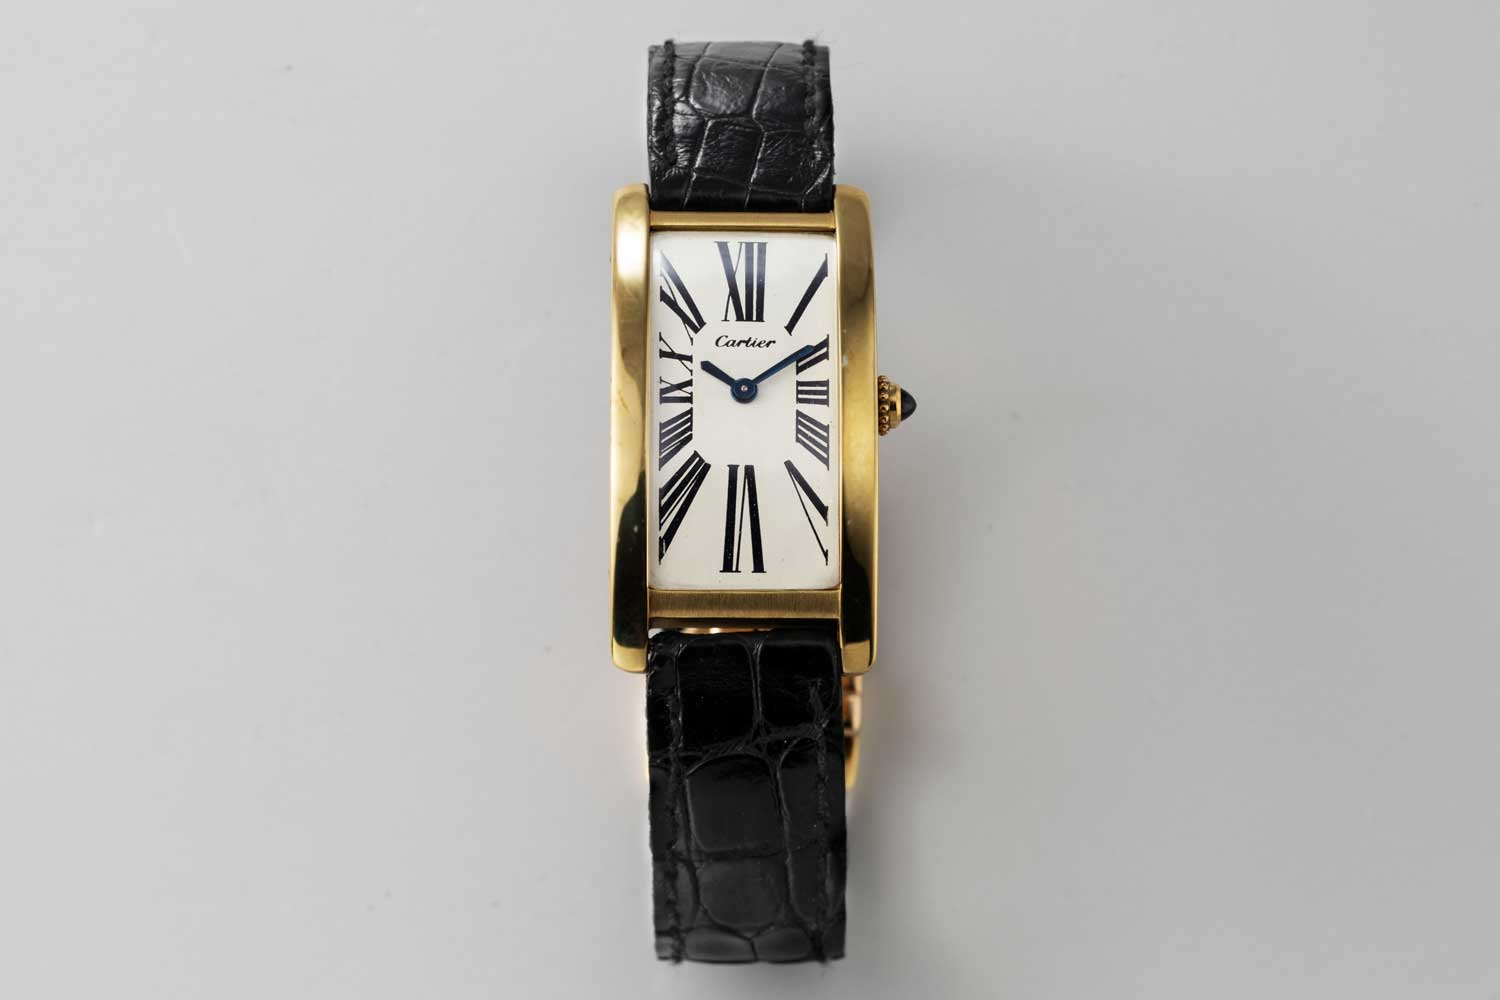 A 9-lignes, 1969 London Cartier Tank Cintrée; dial of the watch has a design which features serif Roman numerals that almost seem to explode from the center of the dial and reach for the edge of the case with a thrilling vibrancy; this particular example is from the private collection of Auro Montanari (©Revolution)